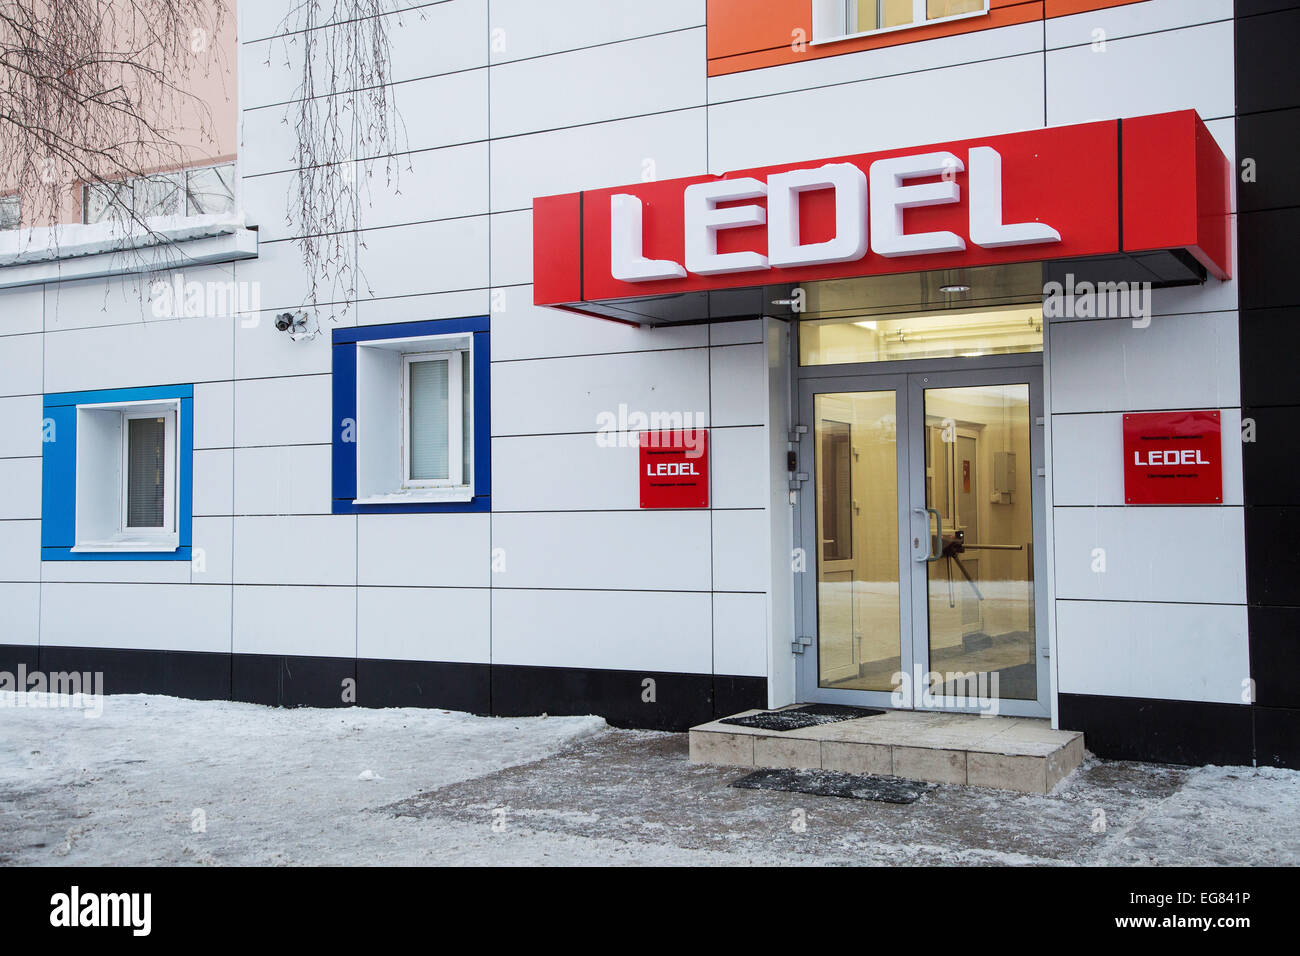 Kazan, Russia. 18th Feb, 2015. A view of the Ledel LED lamps manufacturing plant in Kazan. © Yegor Aleyev/TASS/Alamy - Stock Image